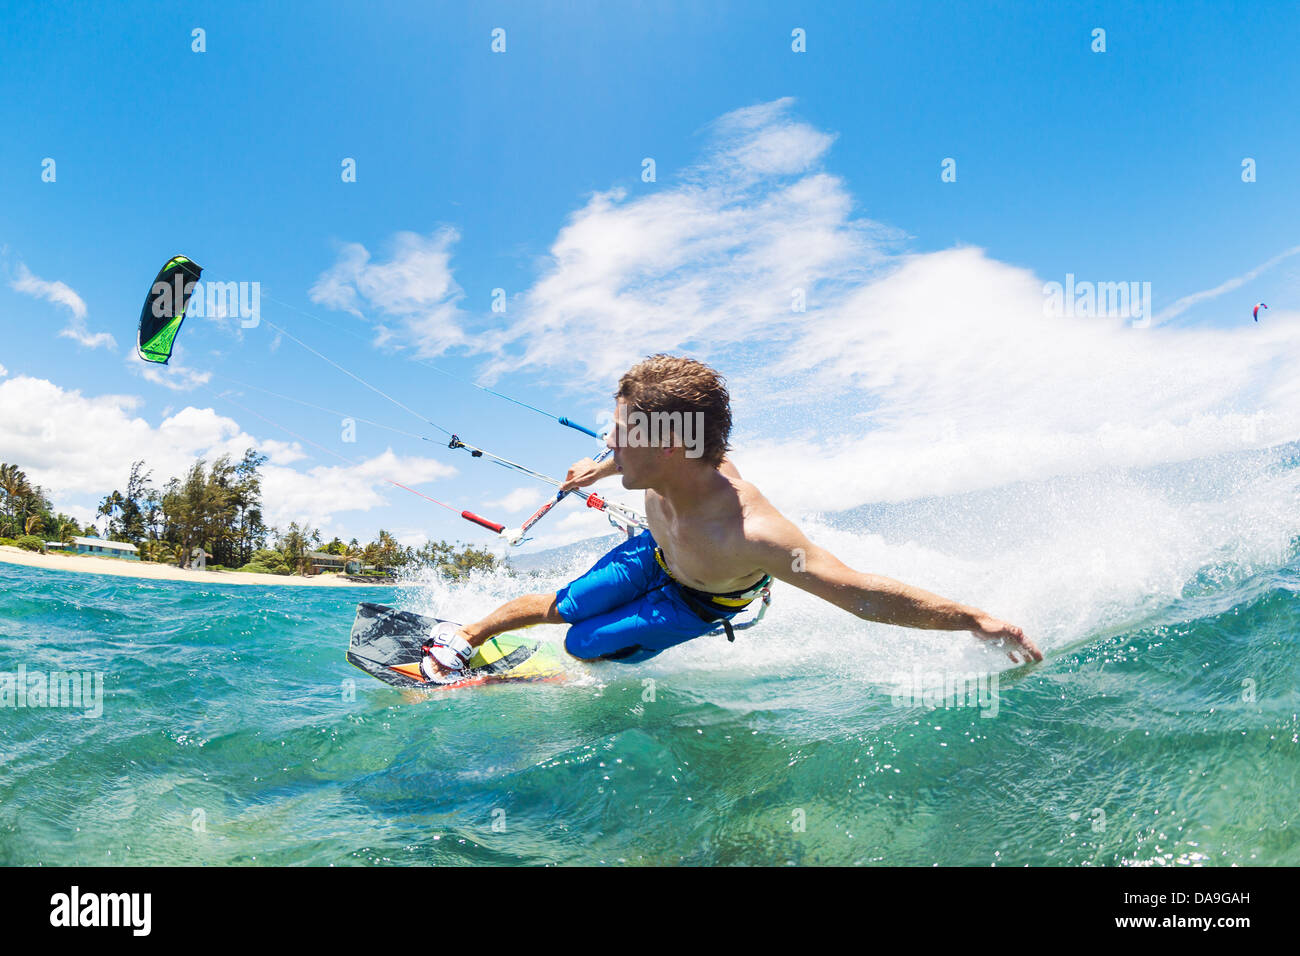 Kite Boarding, Fun in the ocean, Extreme Sport - Stock Image